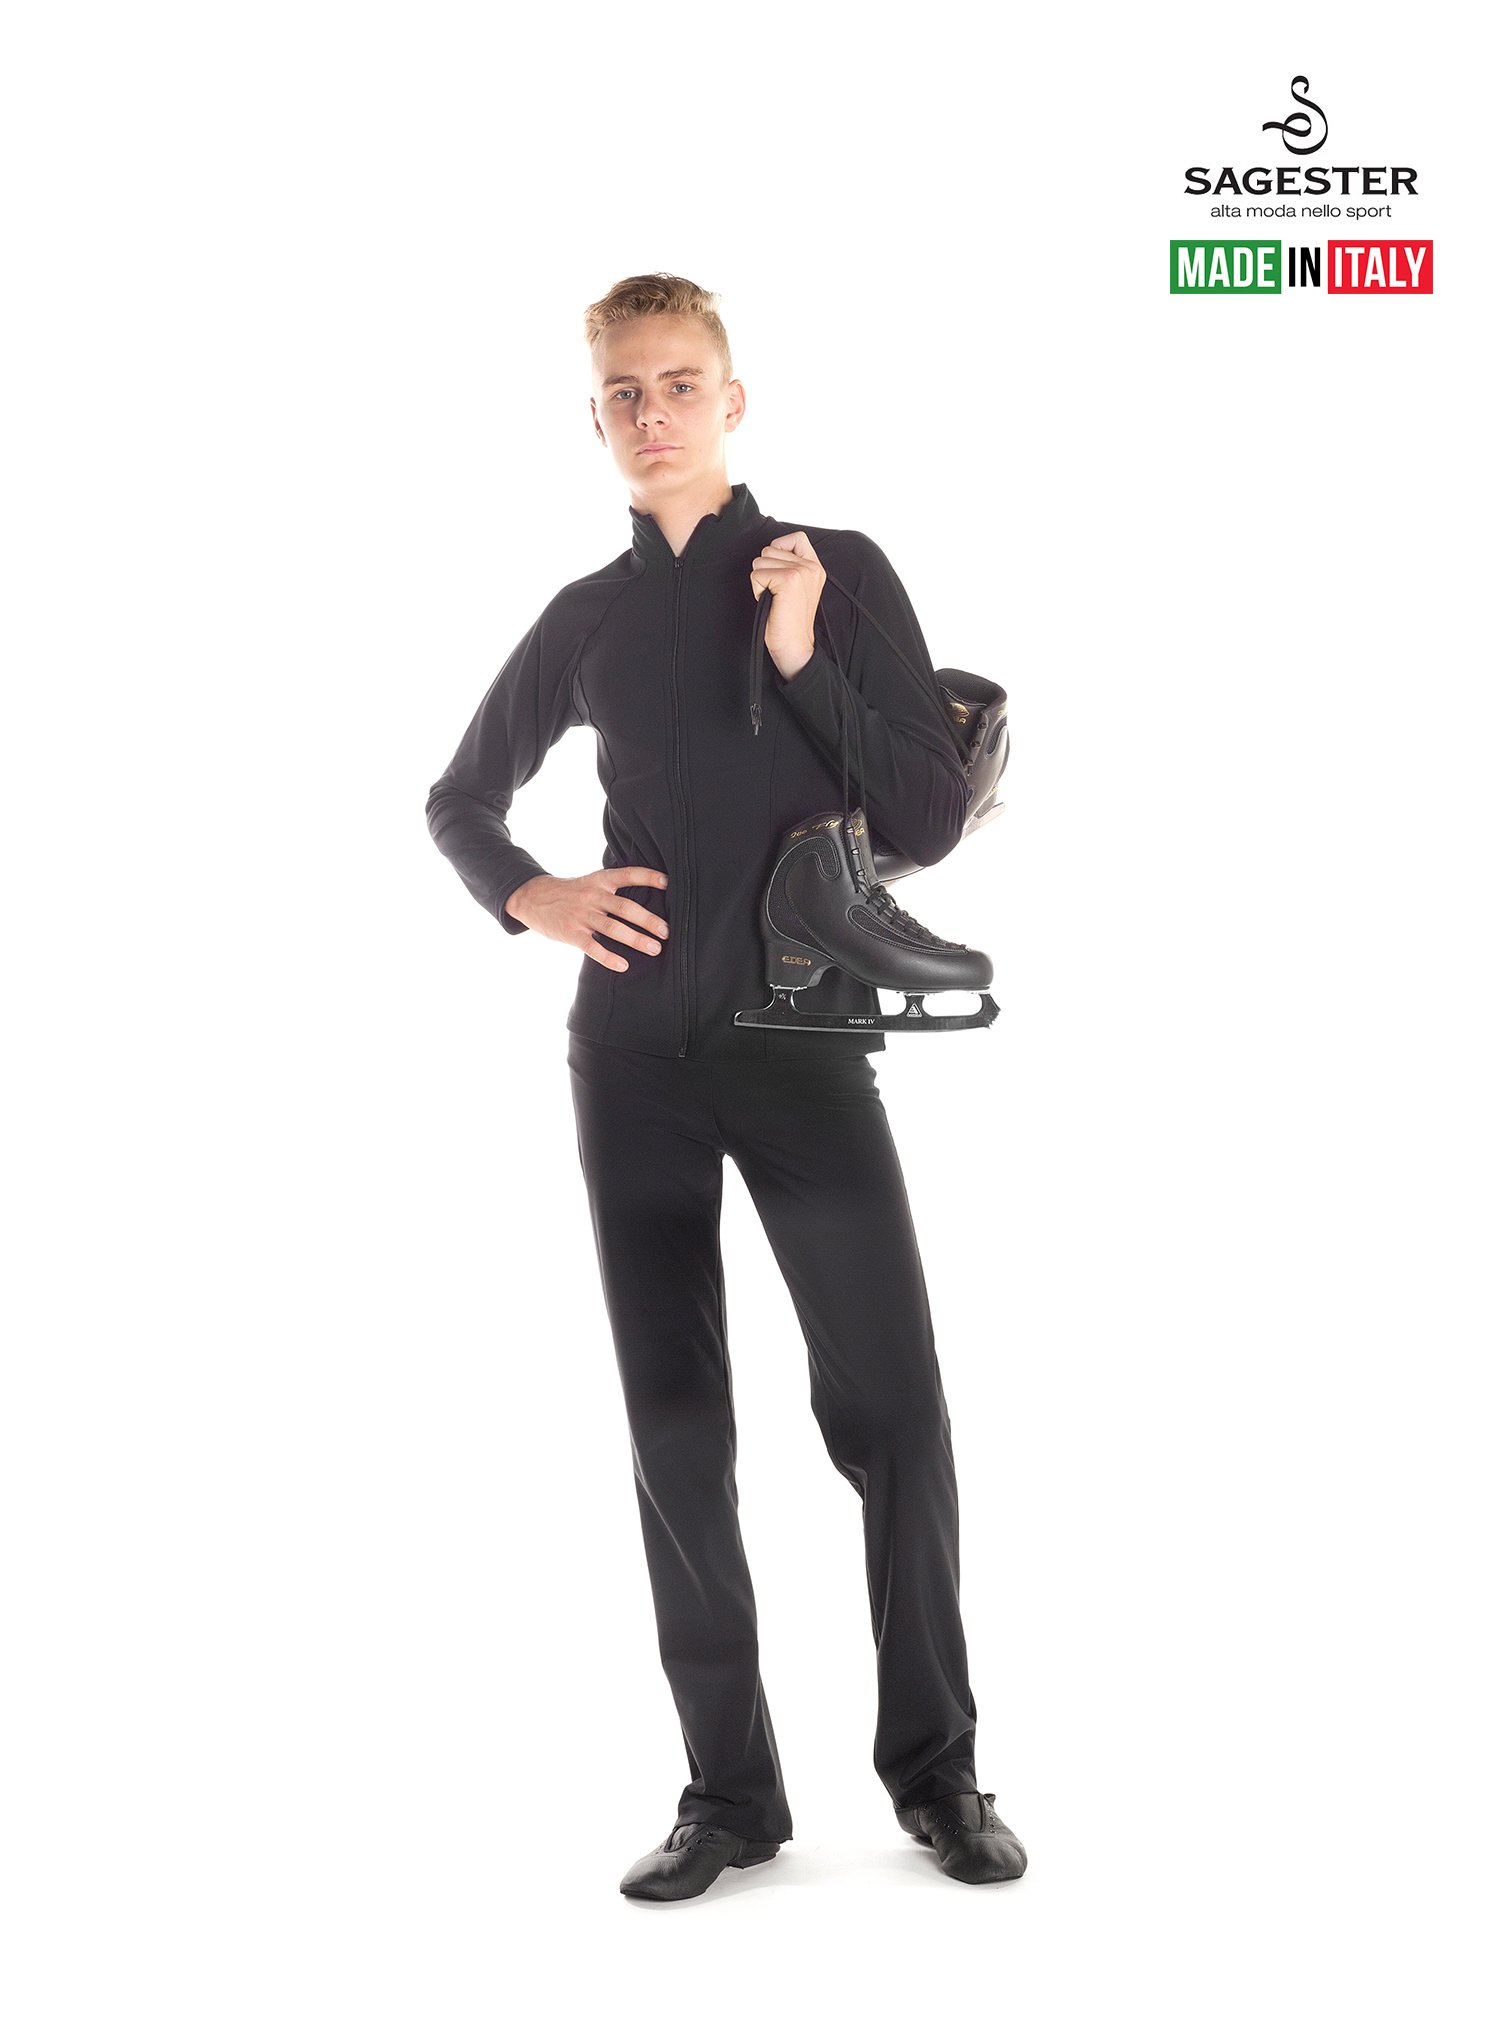 Sagester # 440 / Italy Hand-Made/Ice Skating Pants/for Men / 42, Black Therm